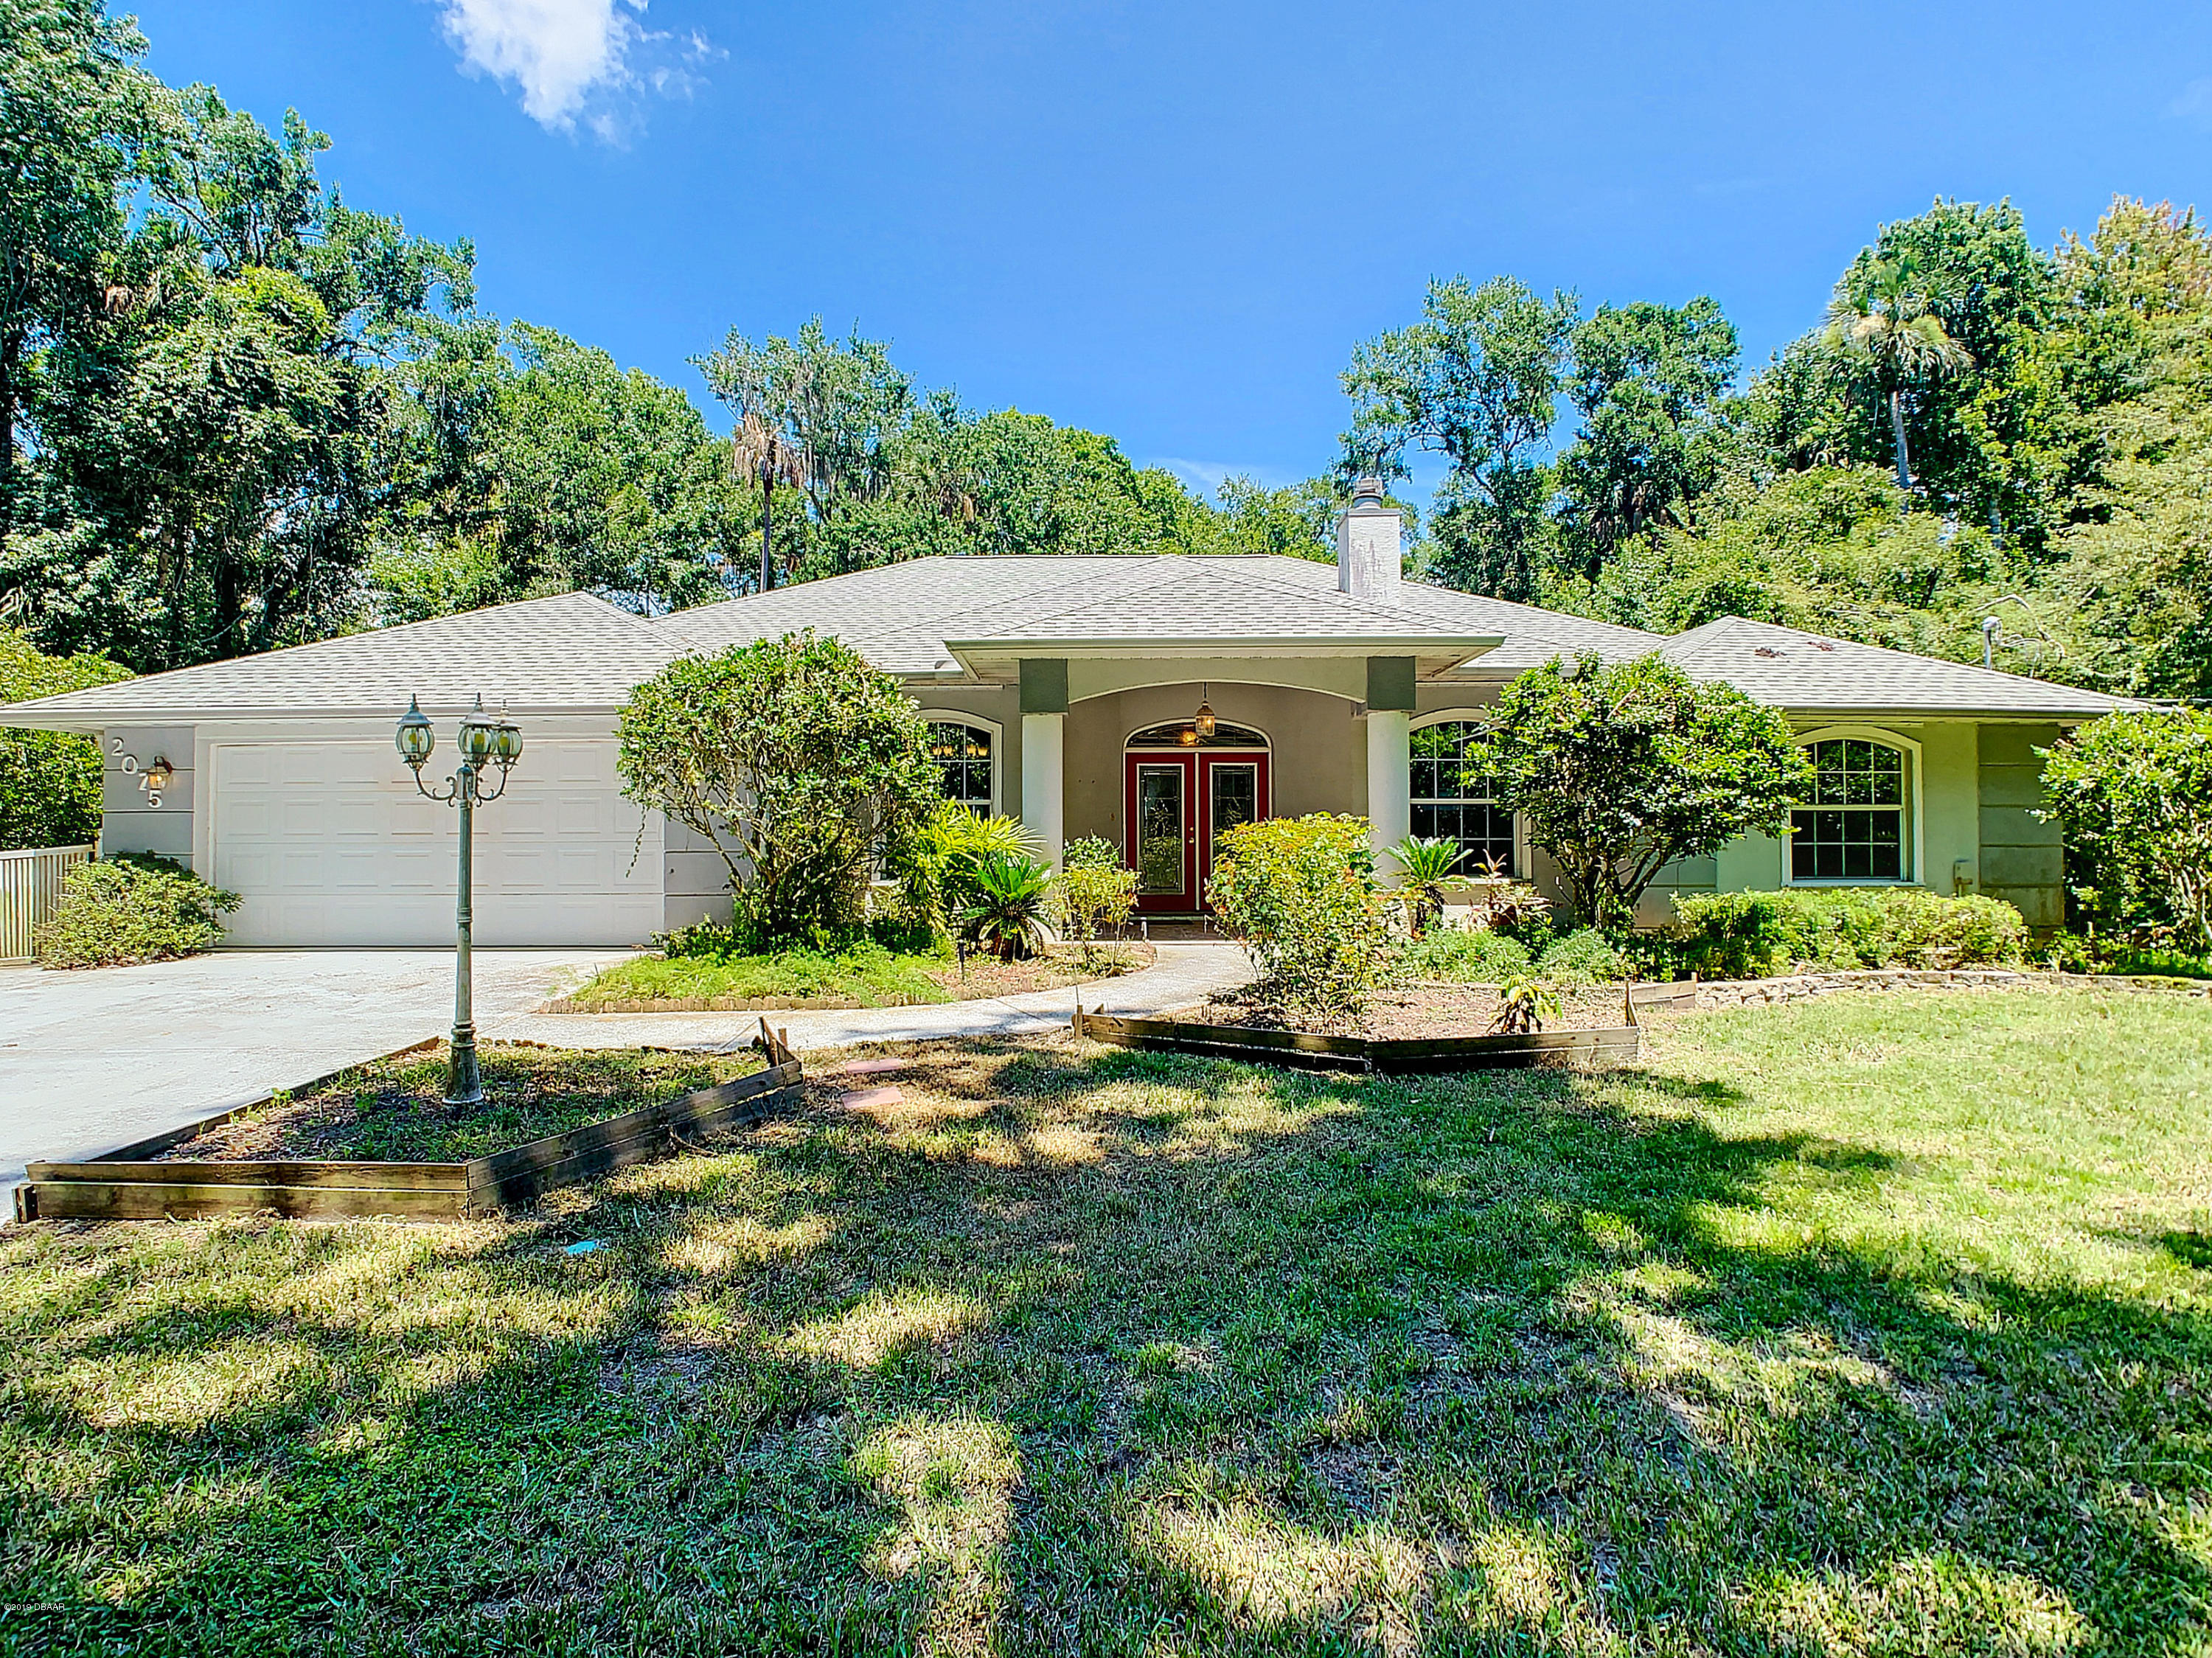 Photo of 2075 Knittle Circle, New Smyrna Beach, FL 32168